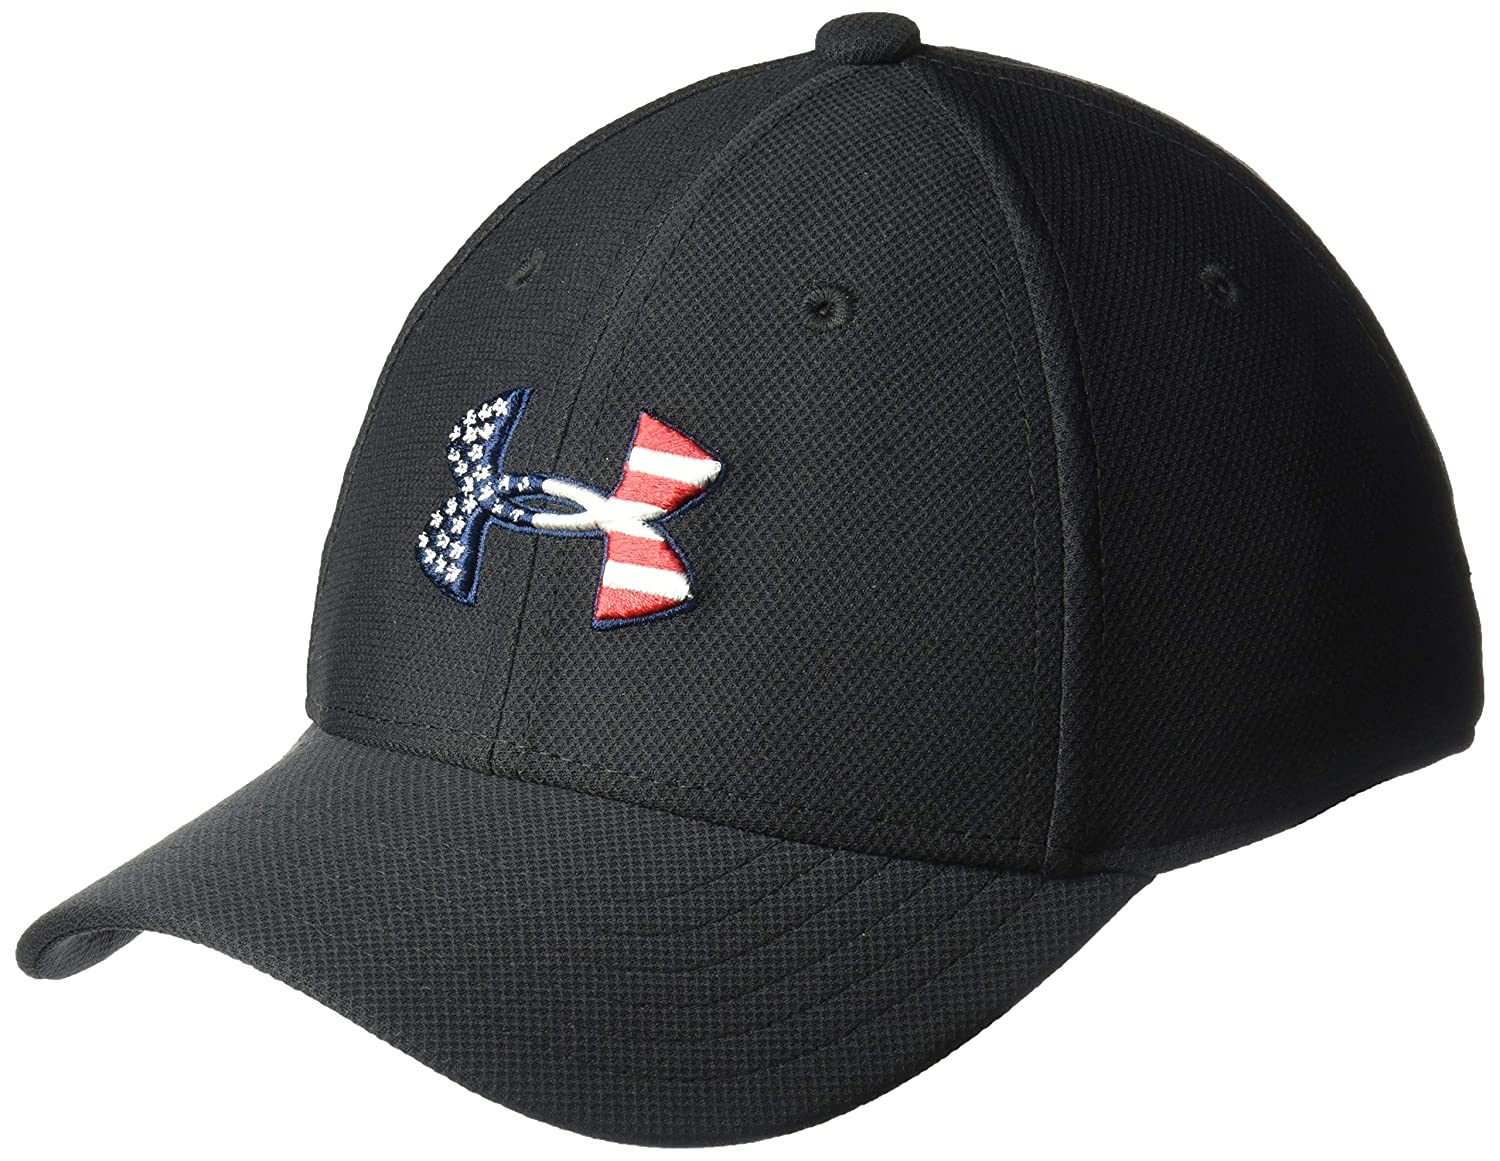 low priced f94f7 4b2bc Amazon.com  Under Armour Boys  Freedom Blitzing Cap, Black  Red, Youth   Clothing